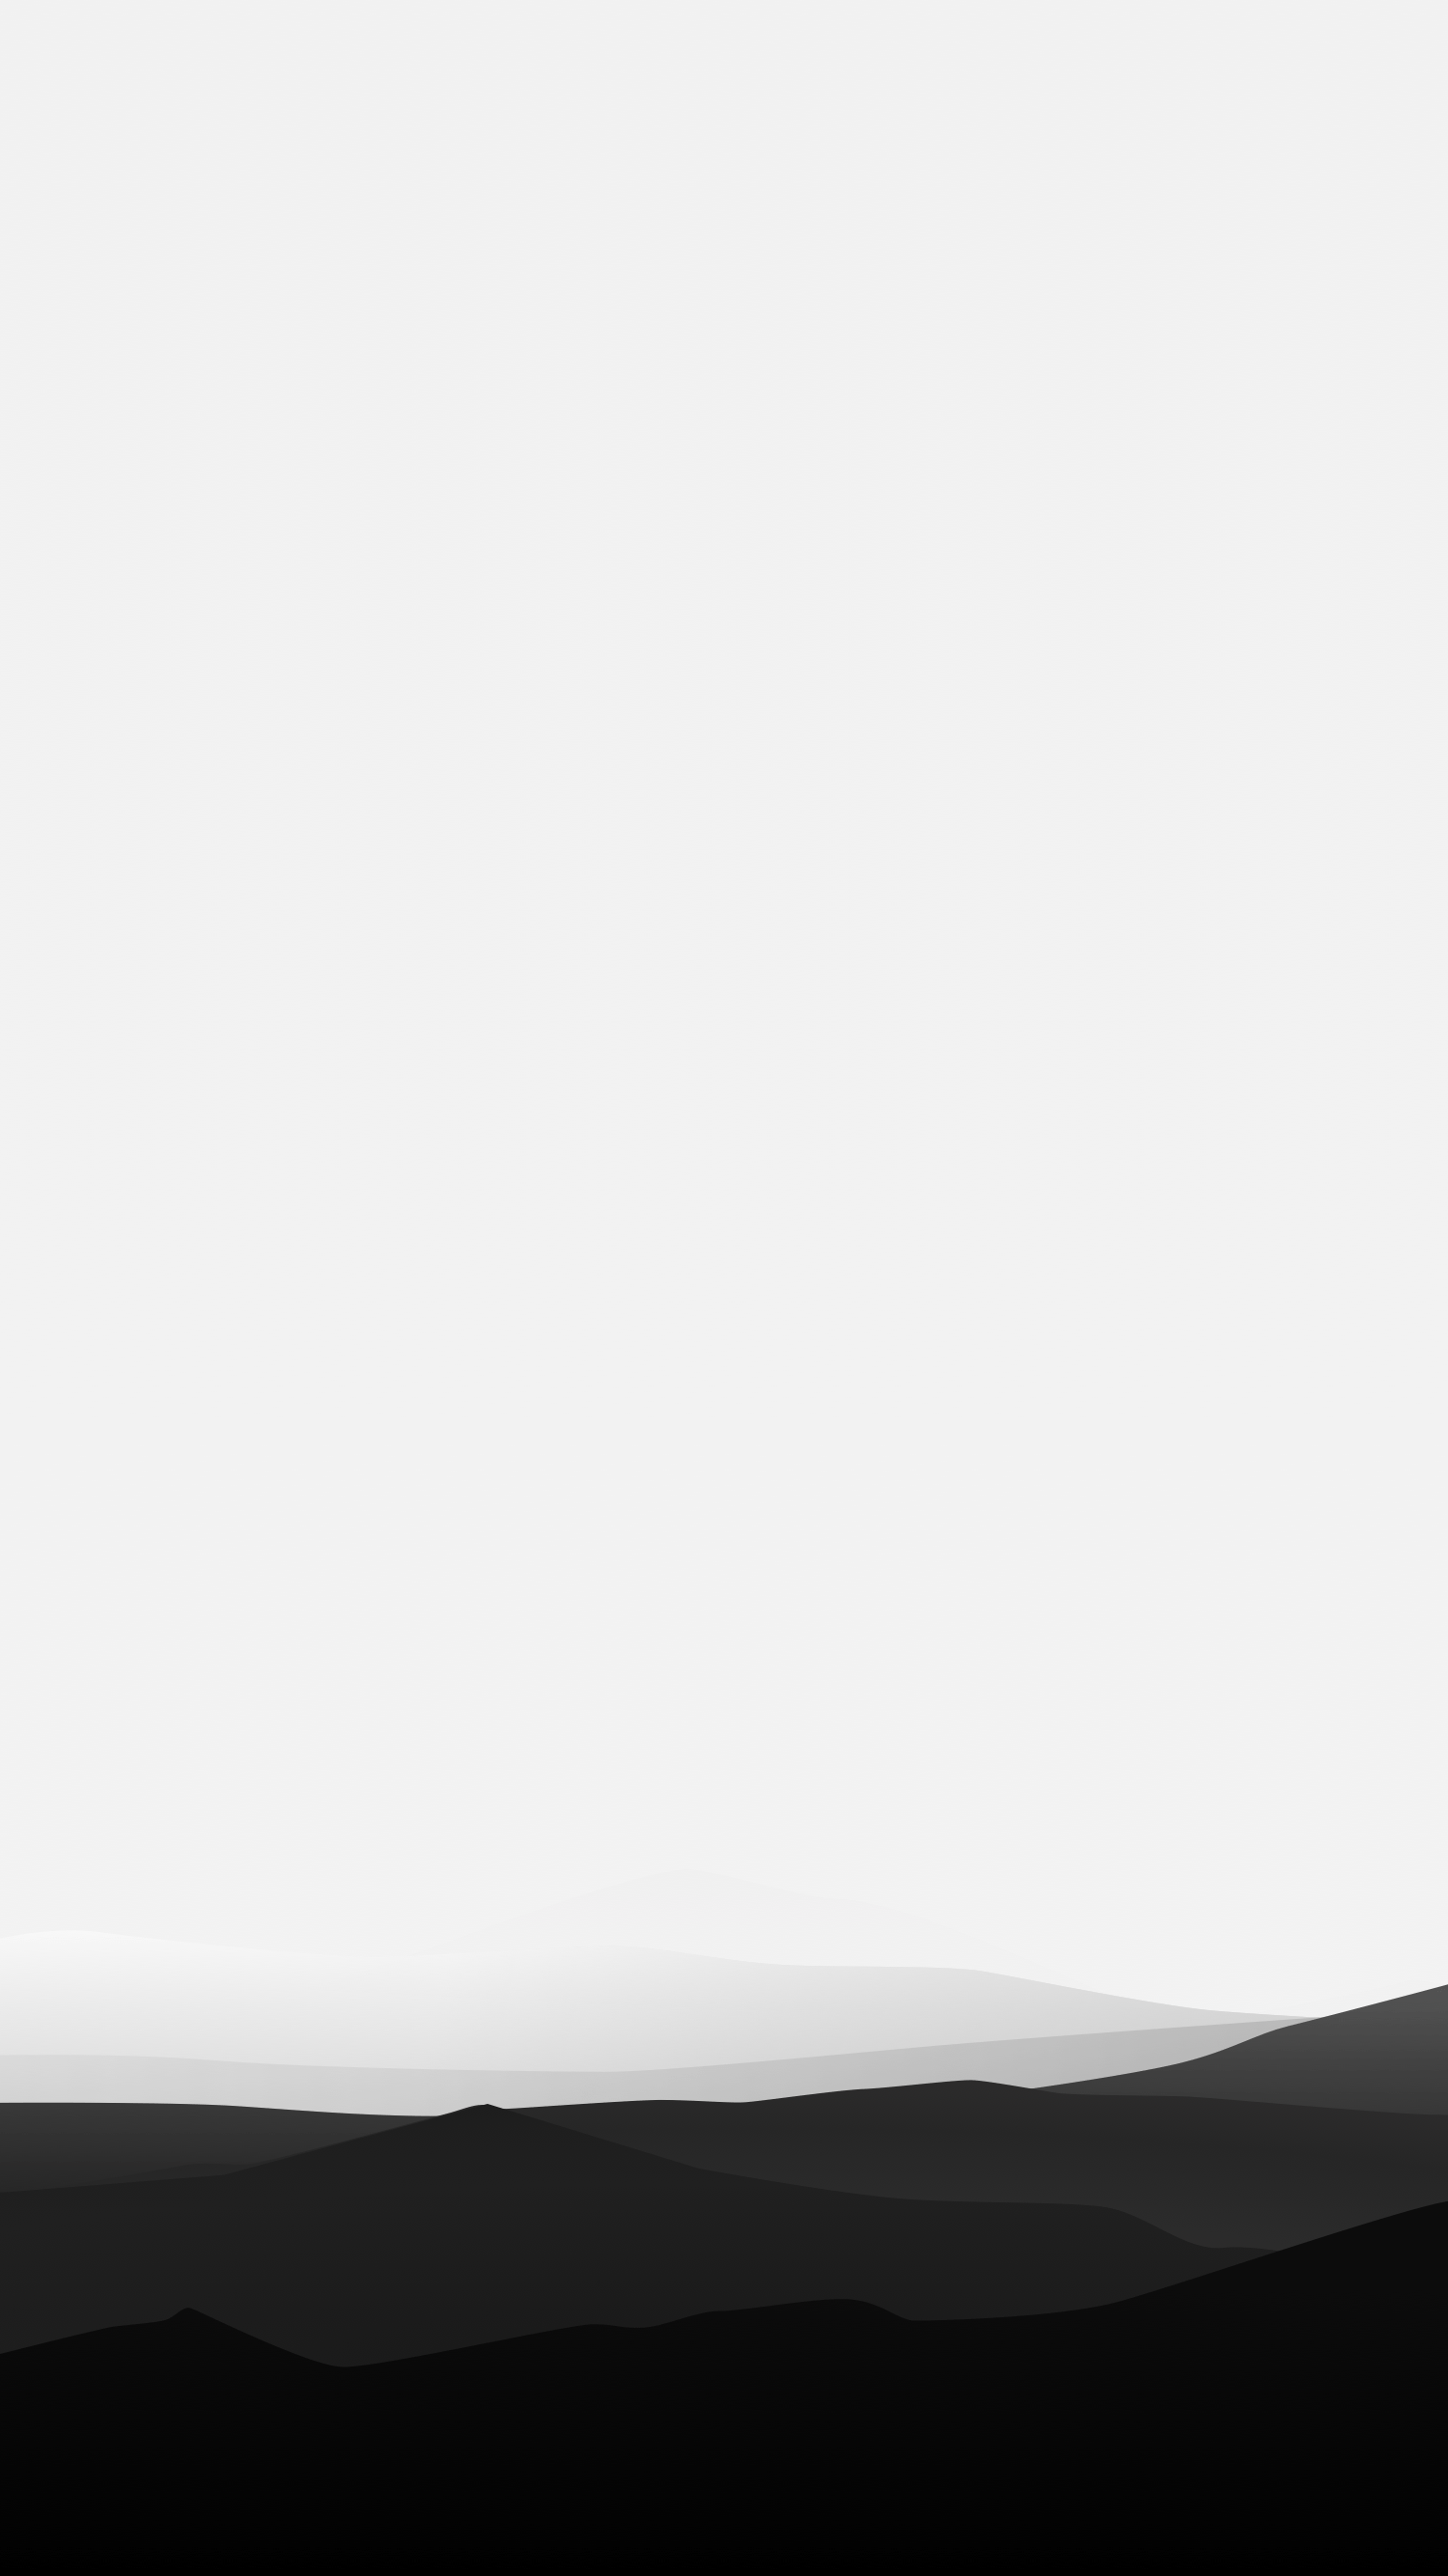 Free download White Minimalist iPhone Wallpapers Top White ...